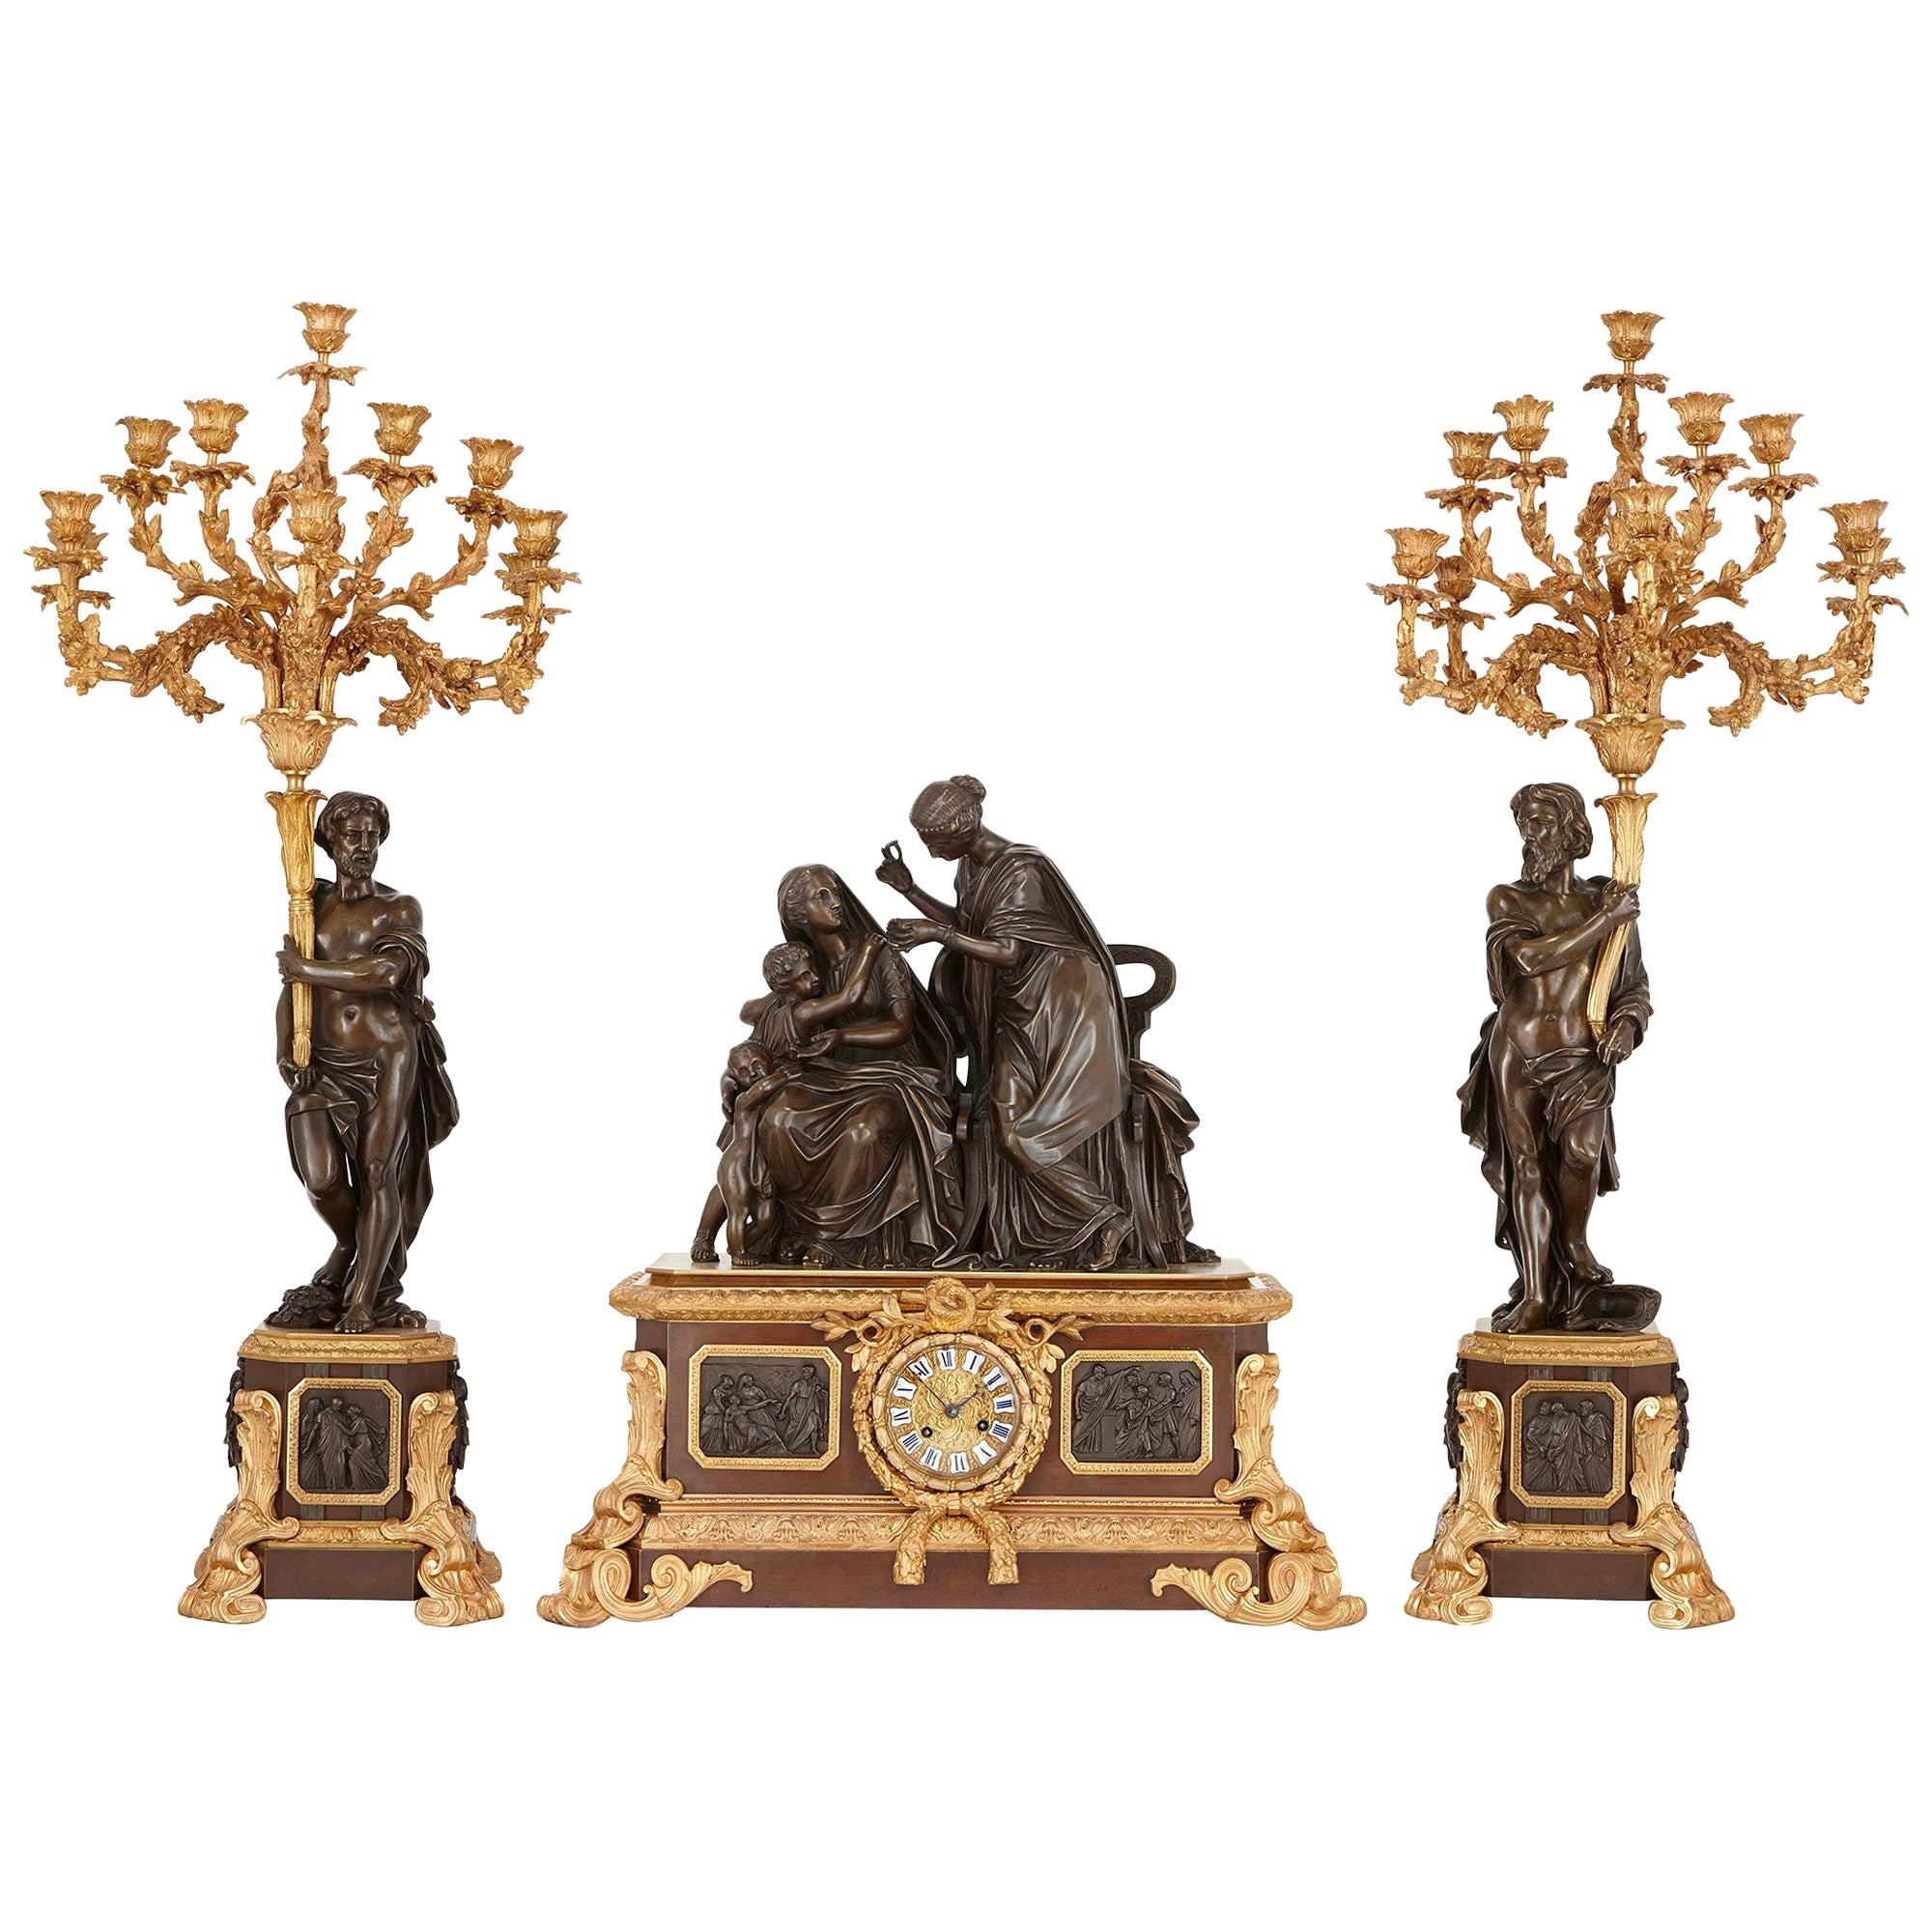 Gilt and Patinated Bronze Antique French Clock Set by Picard